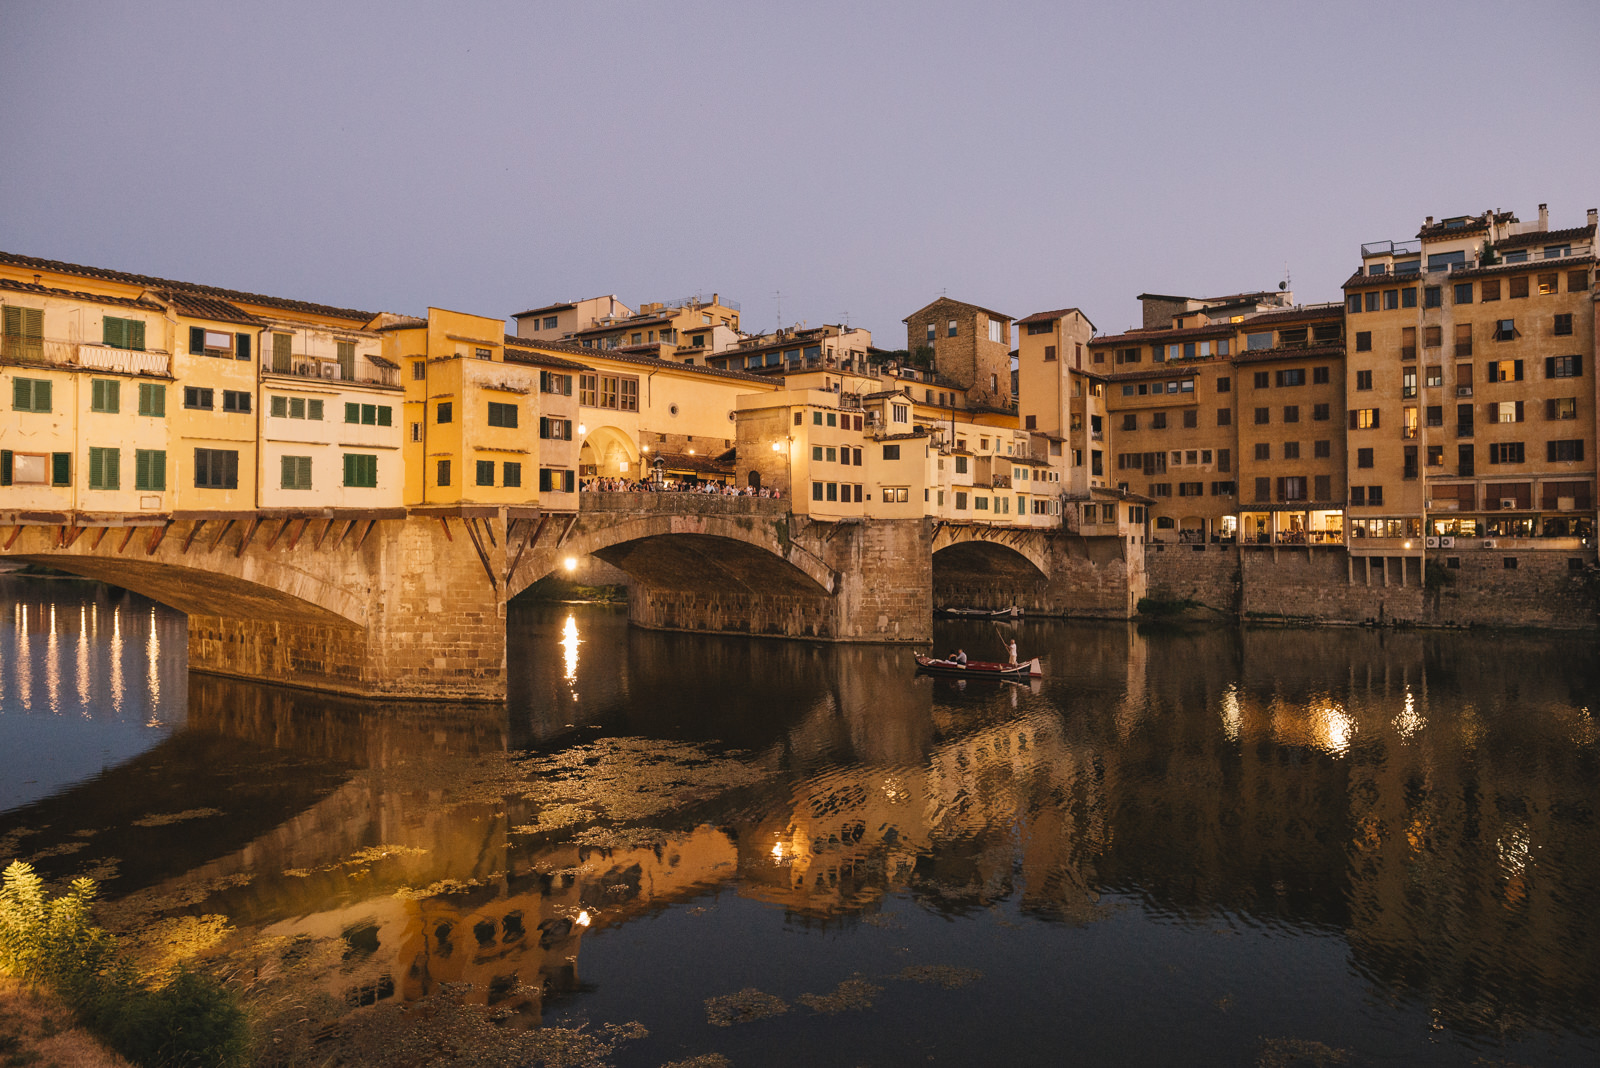 Buildings around the Arno river in Firenze